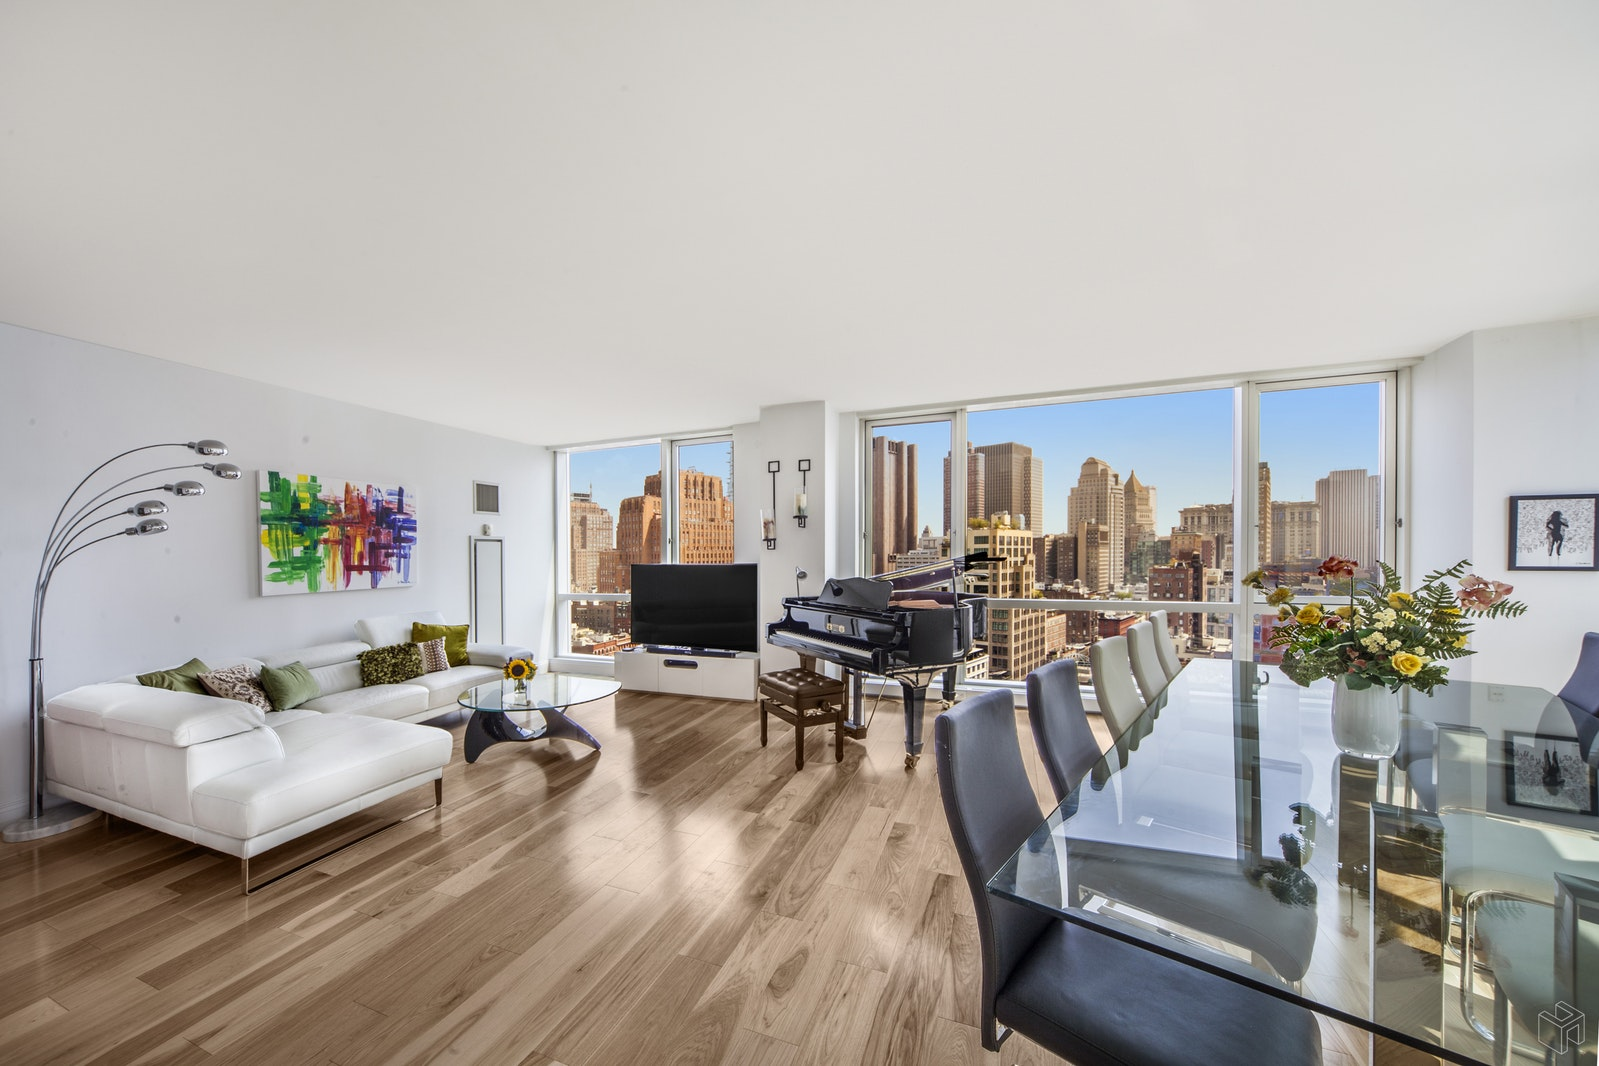 """Price reduced to $2,000/sf. This wondrous two bedroom, two and a half bathroom condominium home floats high in the sky over Tribeca and has over $100,000 in upgrades - new kitchen and floors. One enters the incredibly spacious living/dining room which has floor-to-ceiling windows, bringing in incredible light all day with open East and South City views. The open kitchen has tremendous storage and was completely renovated in 2017 with custom Hans Krug cabinetry, quartzite countertops, Miele stainless steel appliances, a vented stove-top and a Subzero refrigerator. The roomy master king-sized bedroom has a luxurious marble master bathroom with double sinks on marble countertops, a deep soaking tub and a separate walk-in shower.  The second bedroom also has an en suite bathroom and both bedrooms feature floor-to-ceiling windows with gorgeous open Eastern views. There is a half bathroom in the bedroom wing with a brand new Bosch washer/dryer. The floors throughout the apartment are 6.5"""" Hickory in a natural color and were installed in 2017. Other apartment features include central heat and air conditioning and all rooms have floor-to-ceiling windows.  200 Chambers is a luxury condominium with a 24 hour doorman, concierge and wonderful building amenities.  The glorious double-height ceiling lobby is bright and welcoming and features a planted courtyard as well as dry cleaning and package acceptance services. There is a spectacular roof terrace on the 8th floor with multiple seating areas and River and City views. There is also a gym which is being updated in 2018, a sky-lit  pool, a playroom and a residents lounge that can be reserved for events for a fee.  There is a garage in the building (separate fee) that is directly accessible through the building and storage is available for rent.  The location cannot be beat - close to Whole Foods, Bed Bath and Beyond, Hudson River Park, Le District, major subways, the PATH train and a wonderful variety of world class restaurants"""